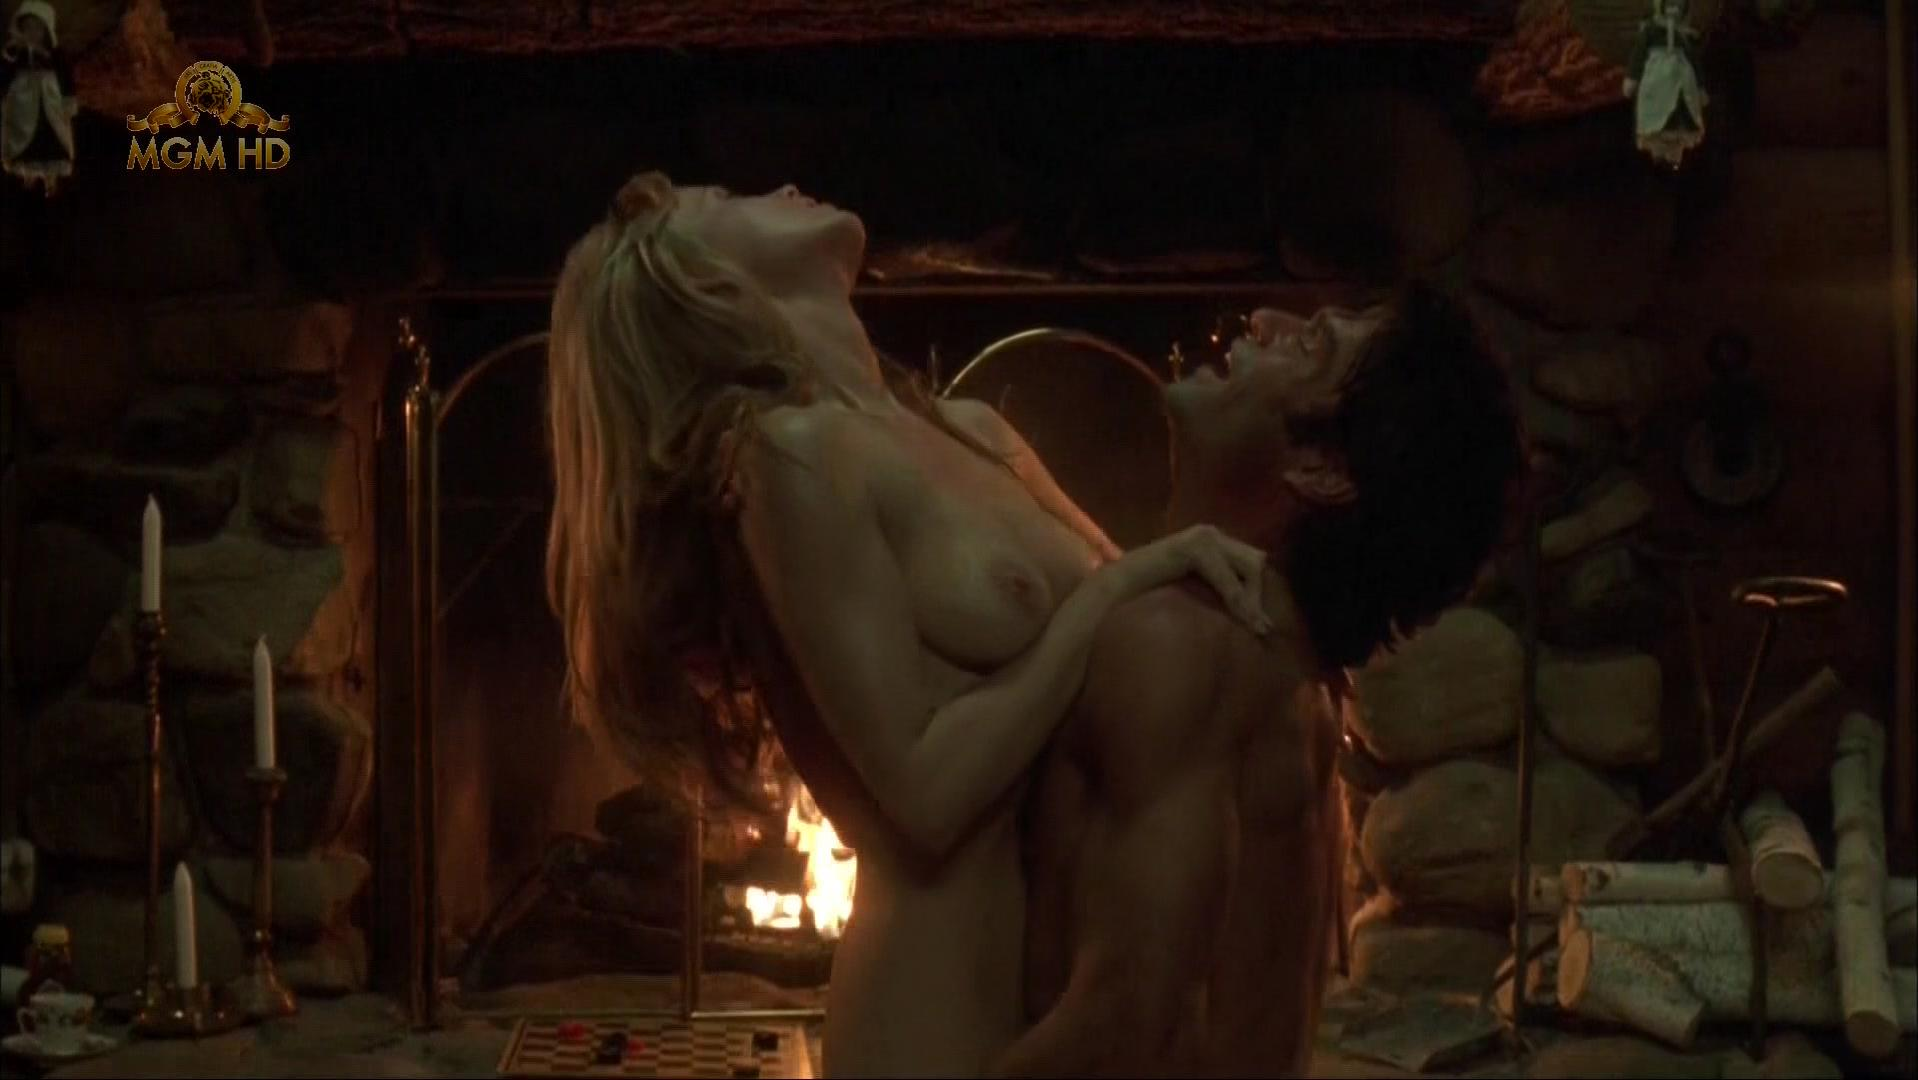 Lysette anthony save me - 2 part 10